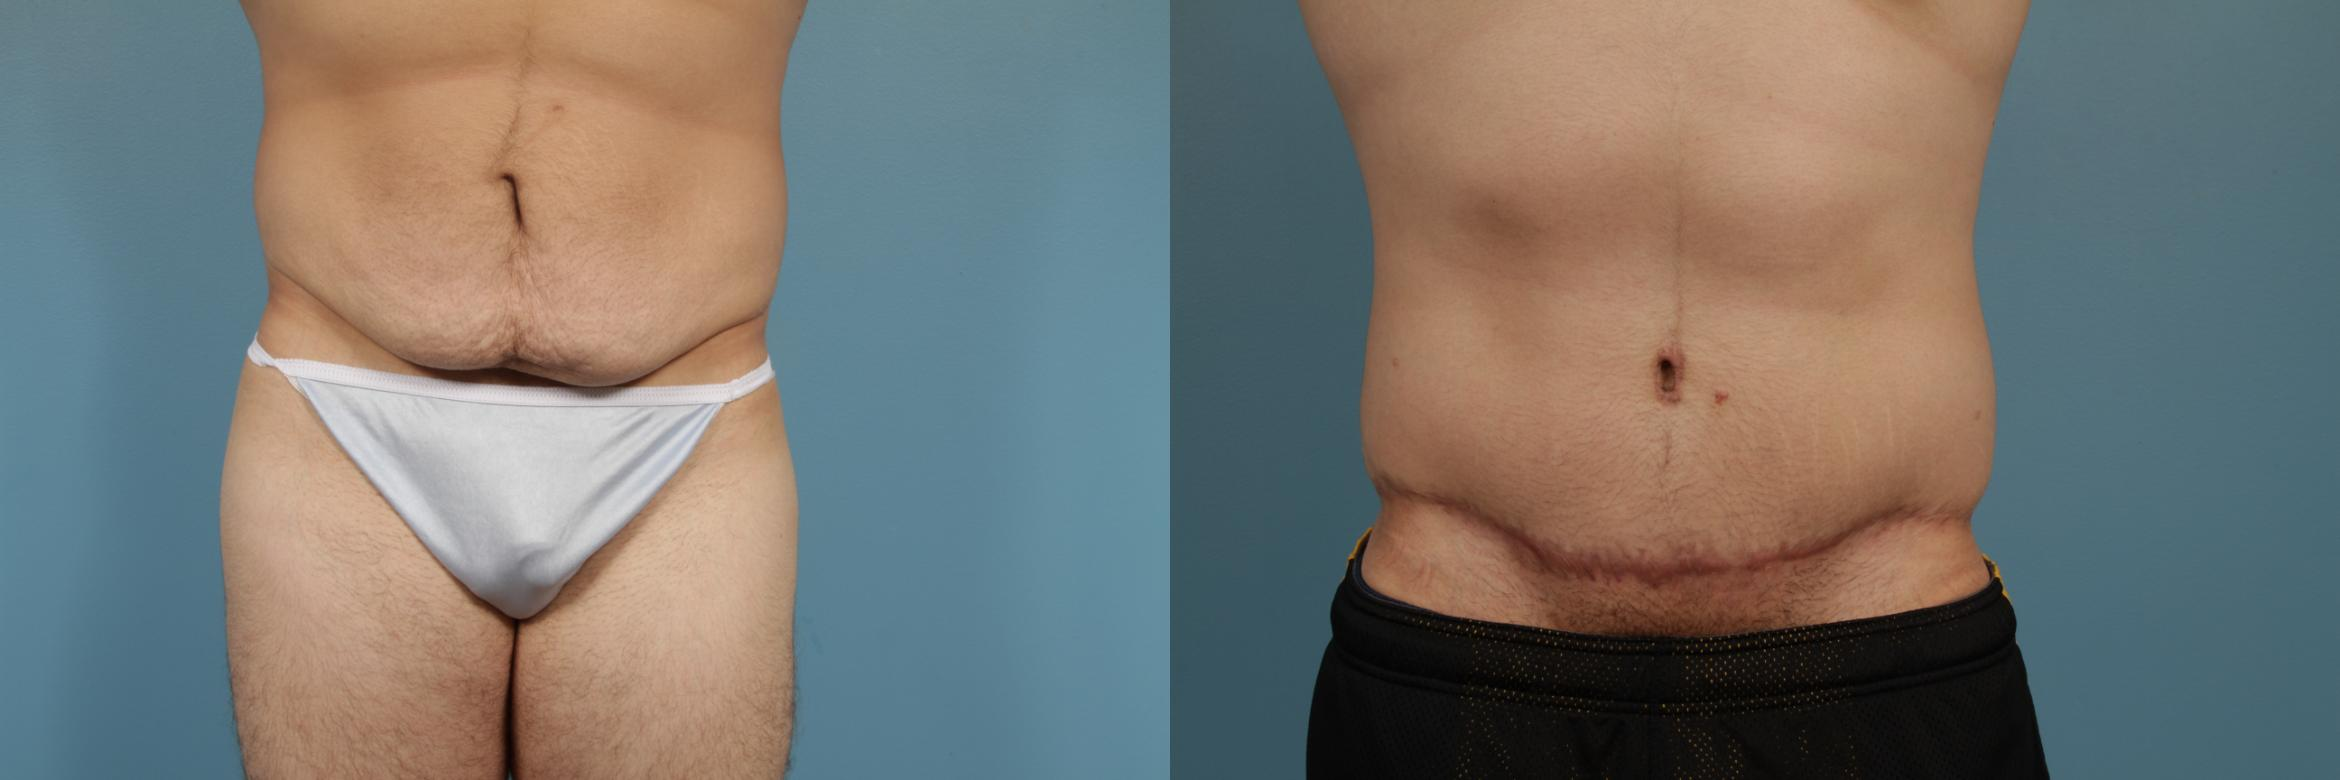 Tummy Tuck Case 296 Before & After View #1 | Chicago, IL | TLKM Plastic Surgery